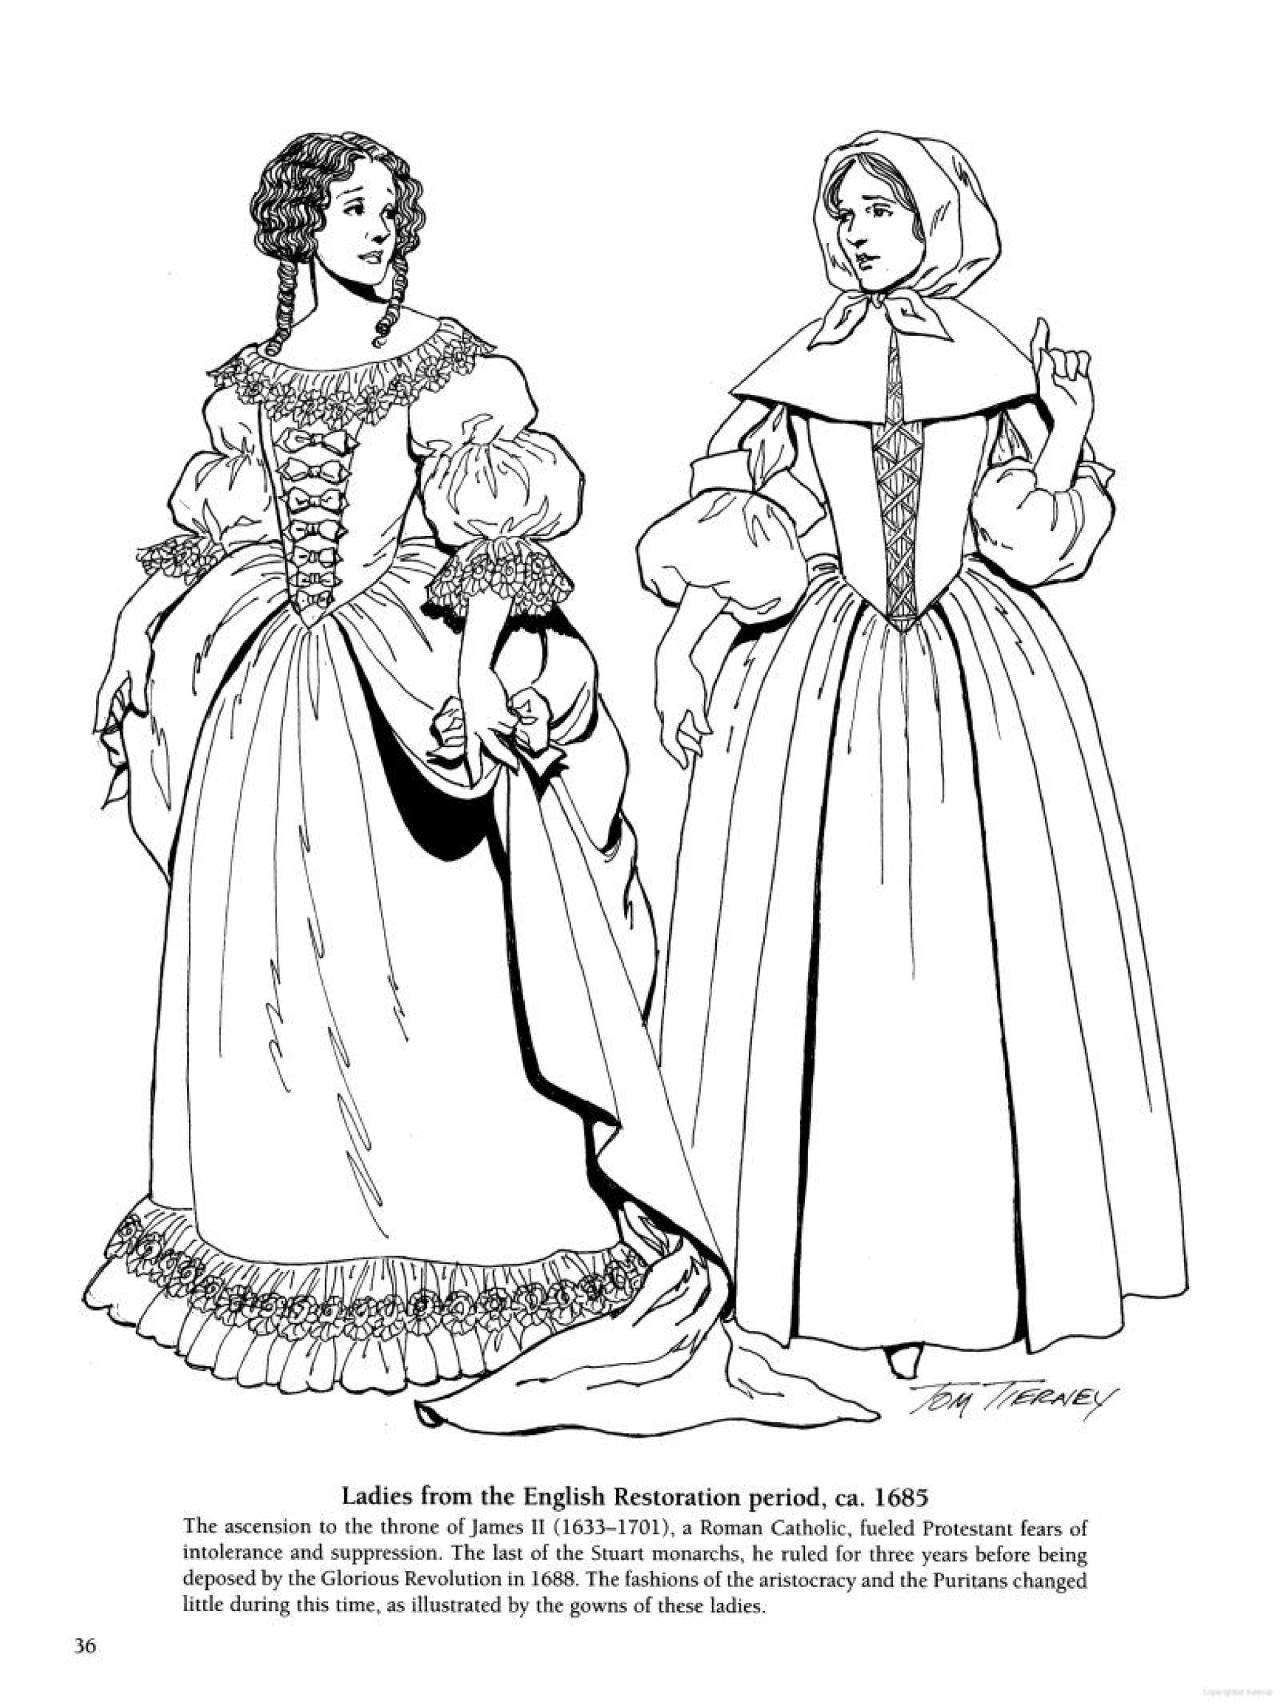 coloring pages fashion fashion coloring pages coloring pages to download and print fashion coloring pages